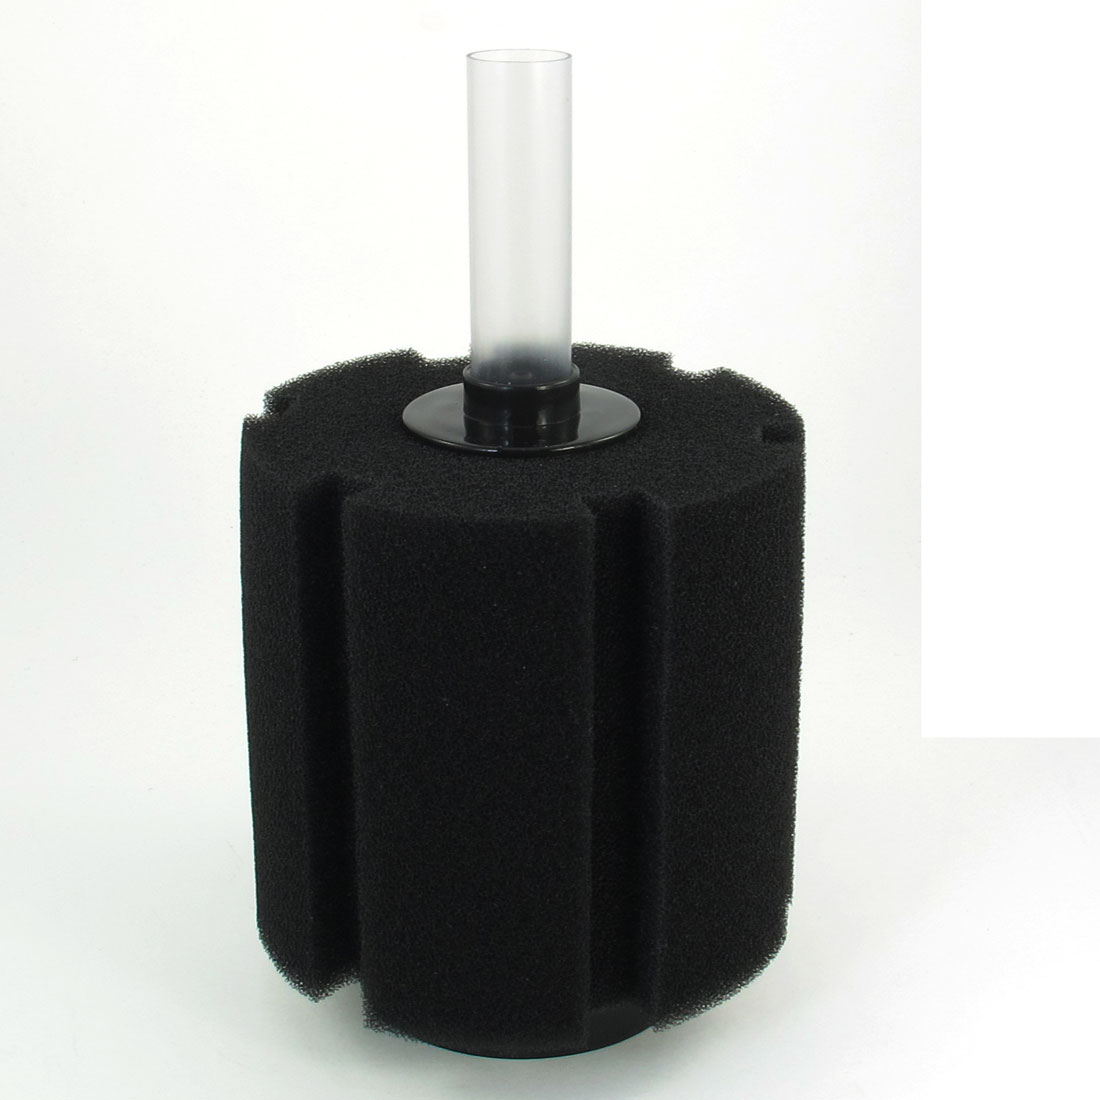 "Fish Tank Aquarium 4.5"" Dia Bio Biochemical Sponge Fiter Black 8.5"" High"